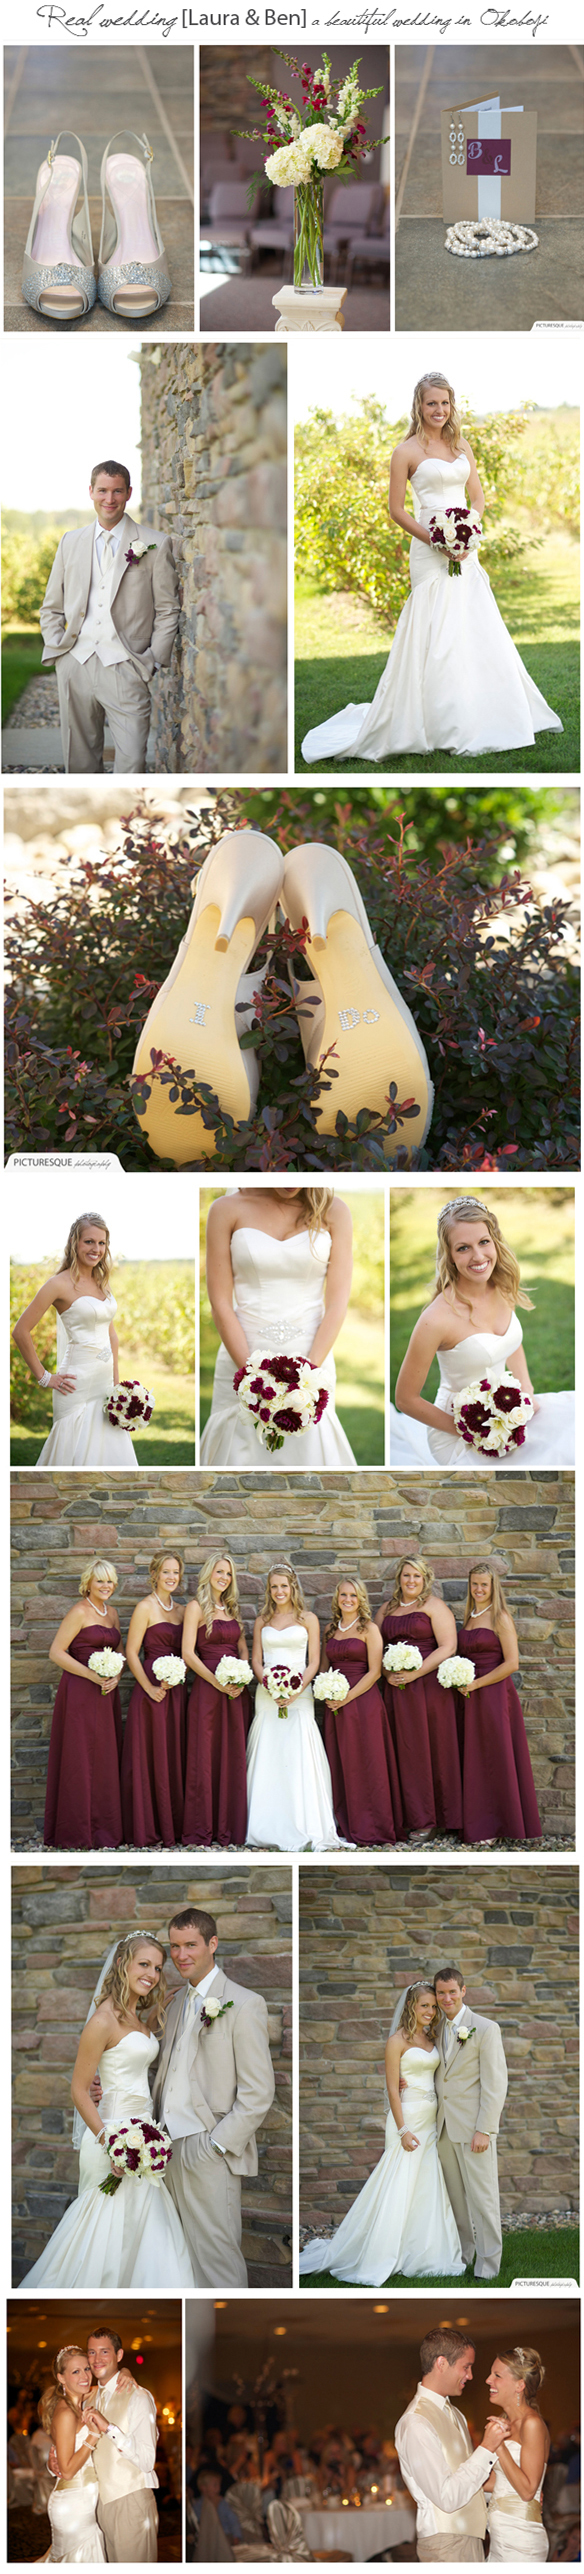 Wedding Photographers in Okoboji Iowa